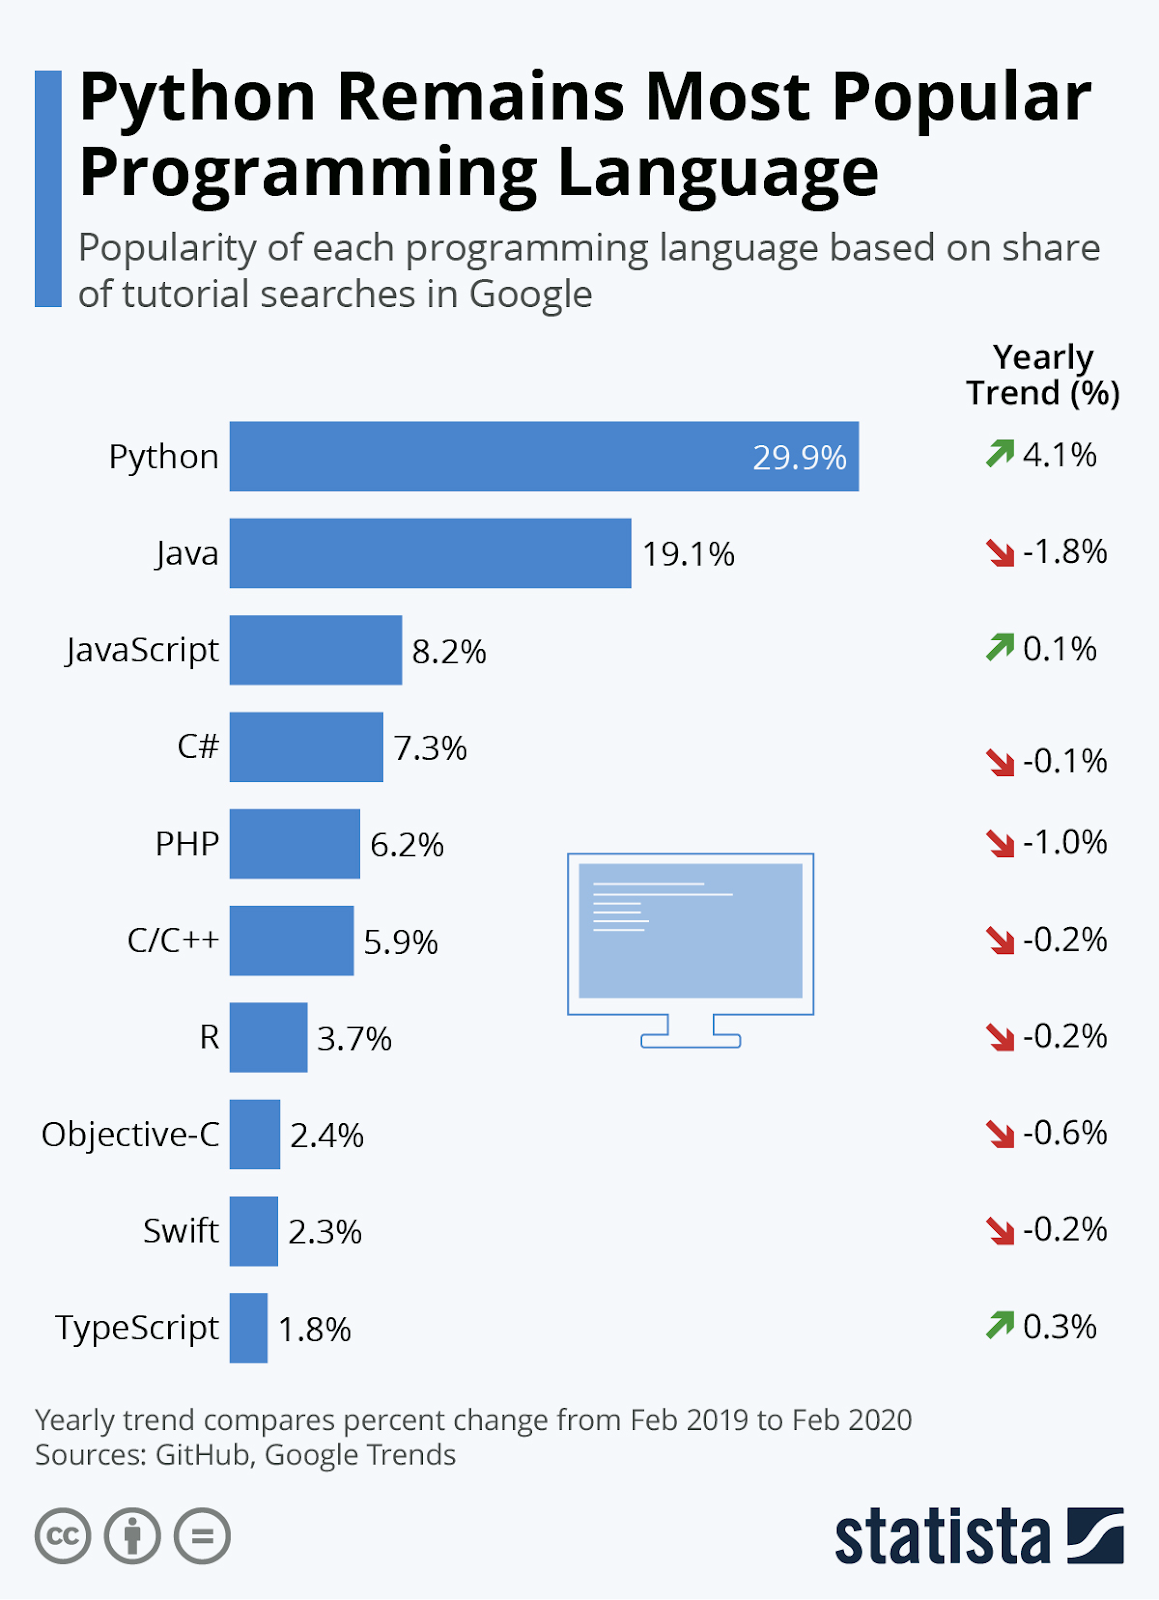 Share of searches tor tutorials in Google by programming languages